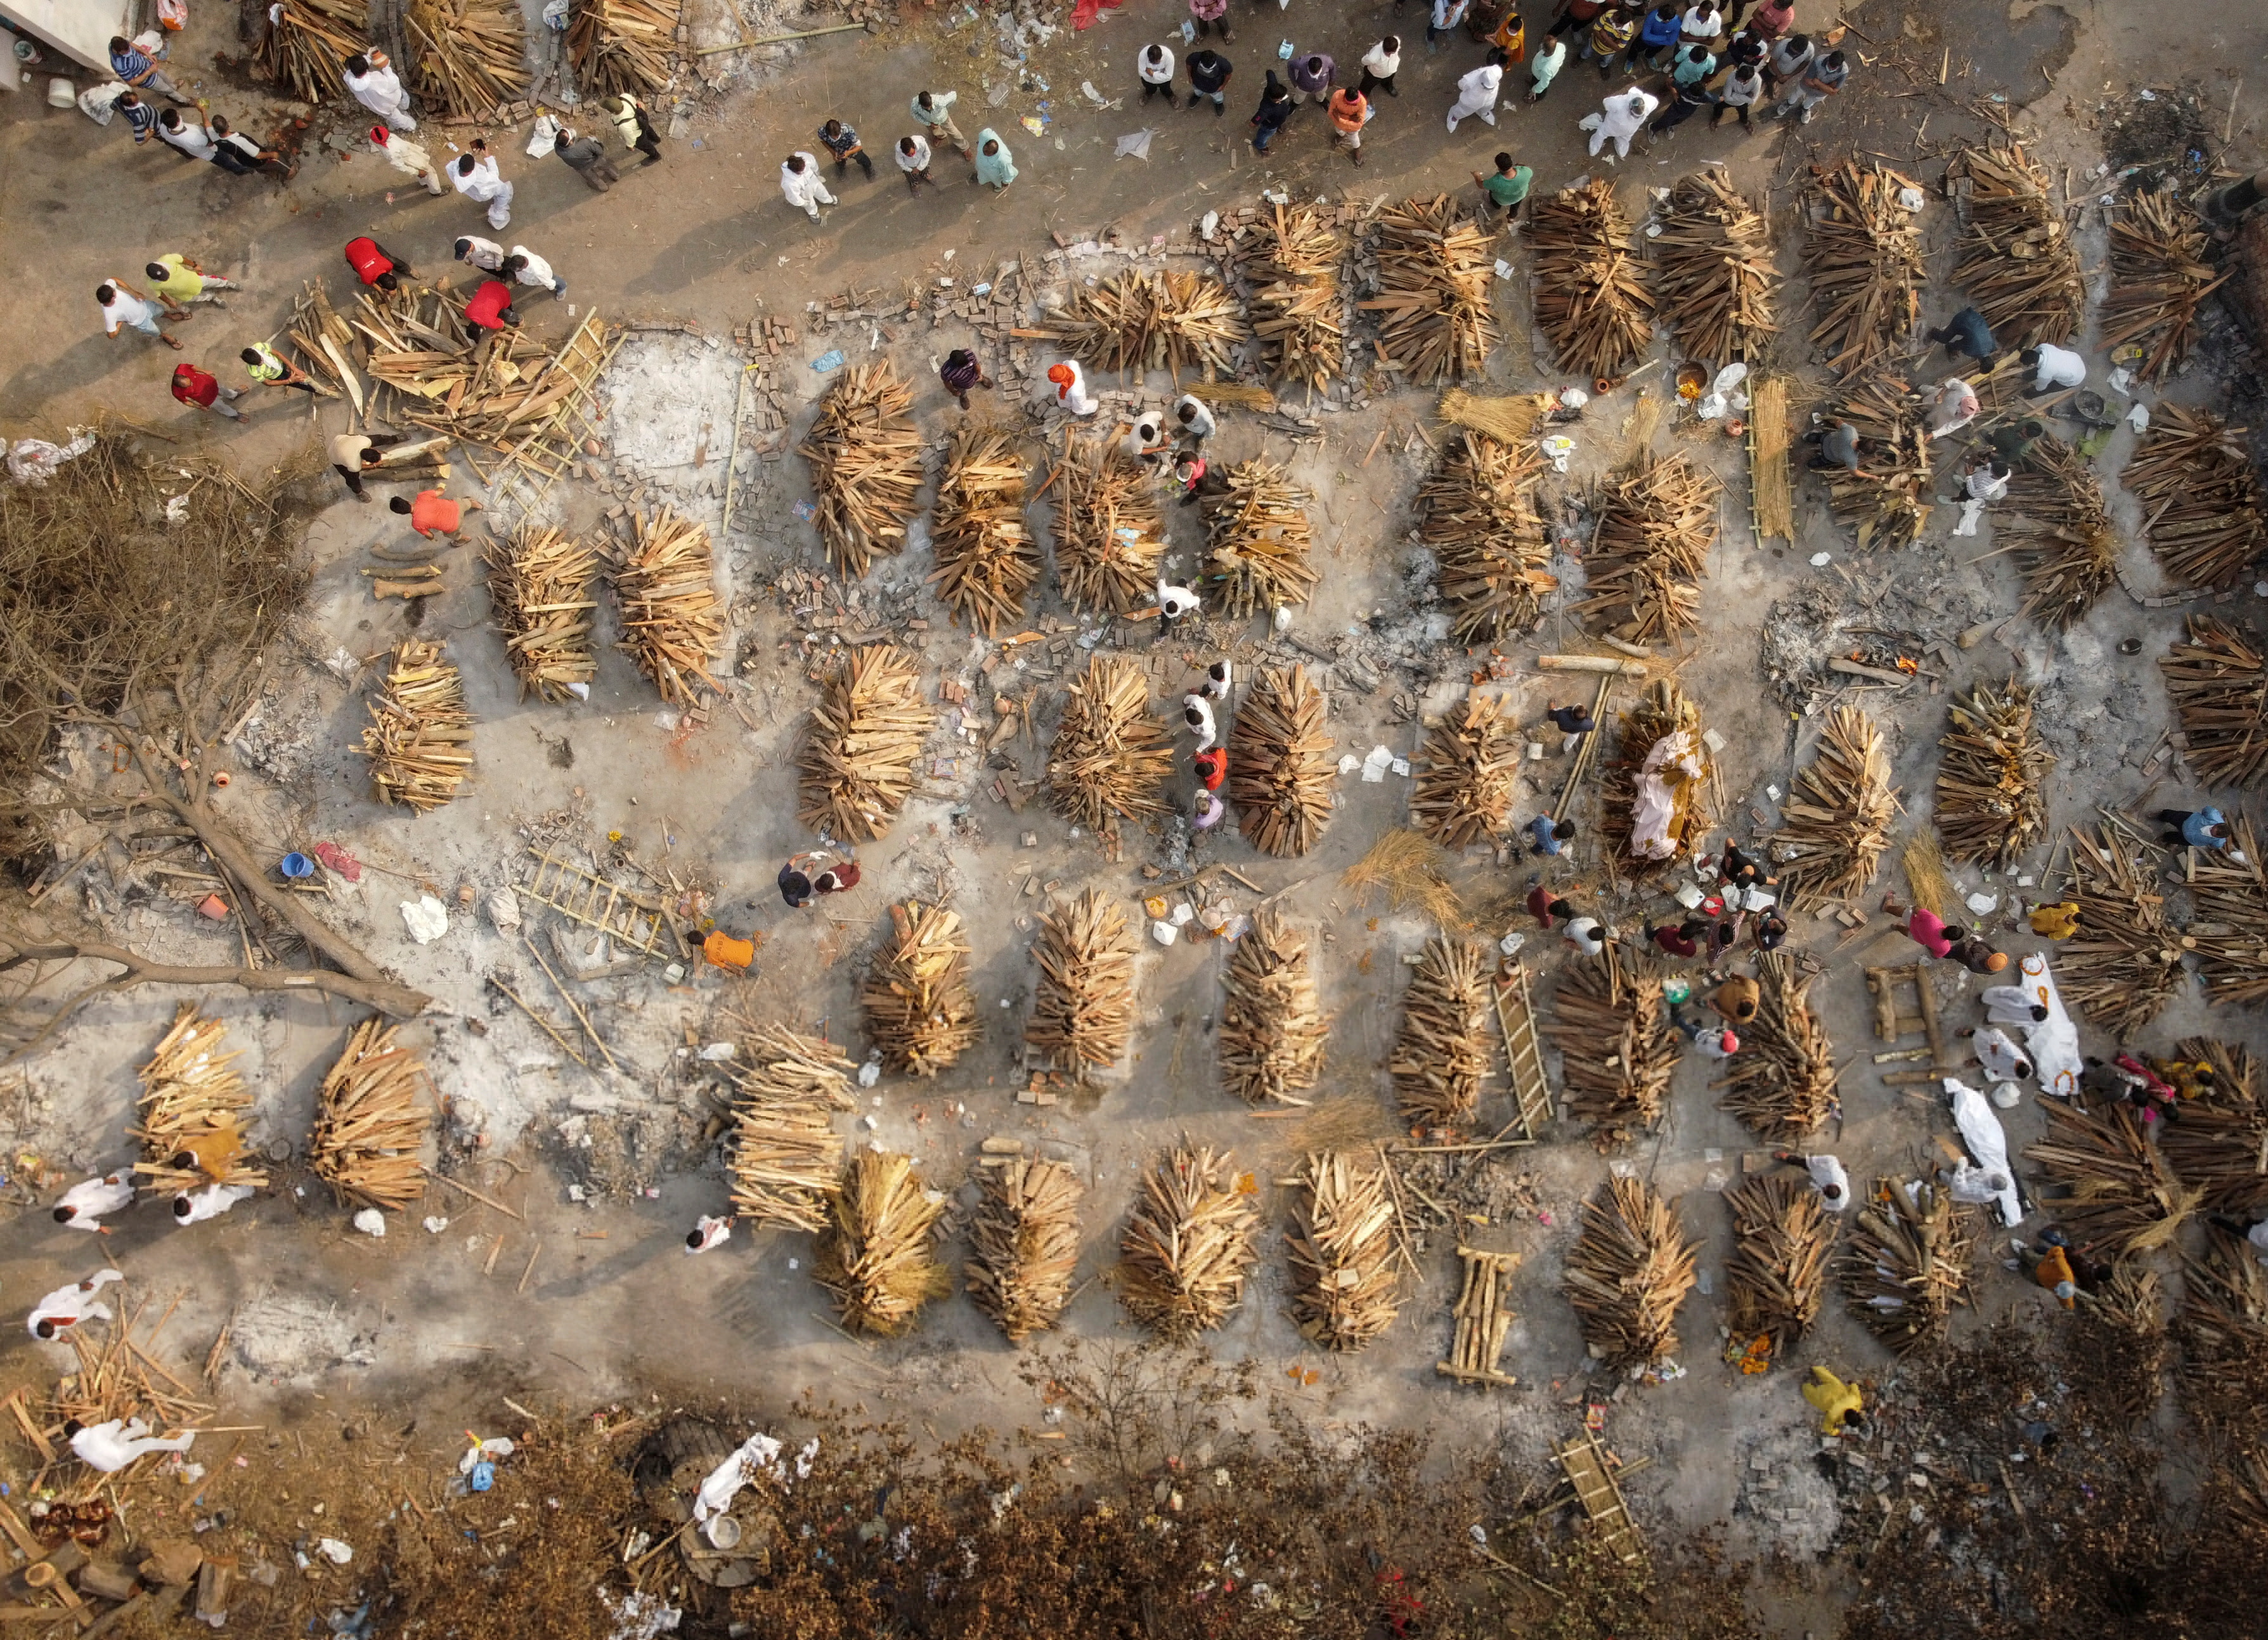 The grounds are prepared for mass cremation of coronavirus disease (COVID-19) victims in New Delhi, India, April 28, 2021. Picture taken with a drone. REUTERS/Danish Siddiqui